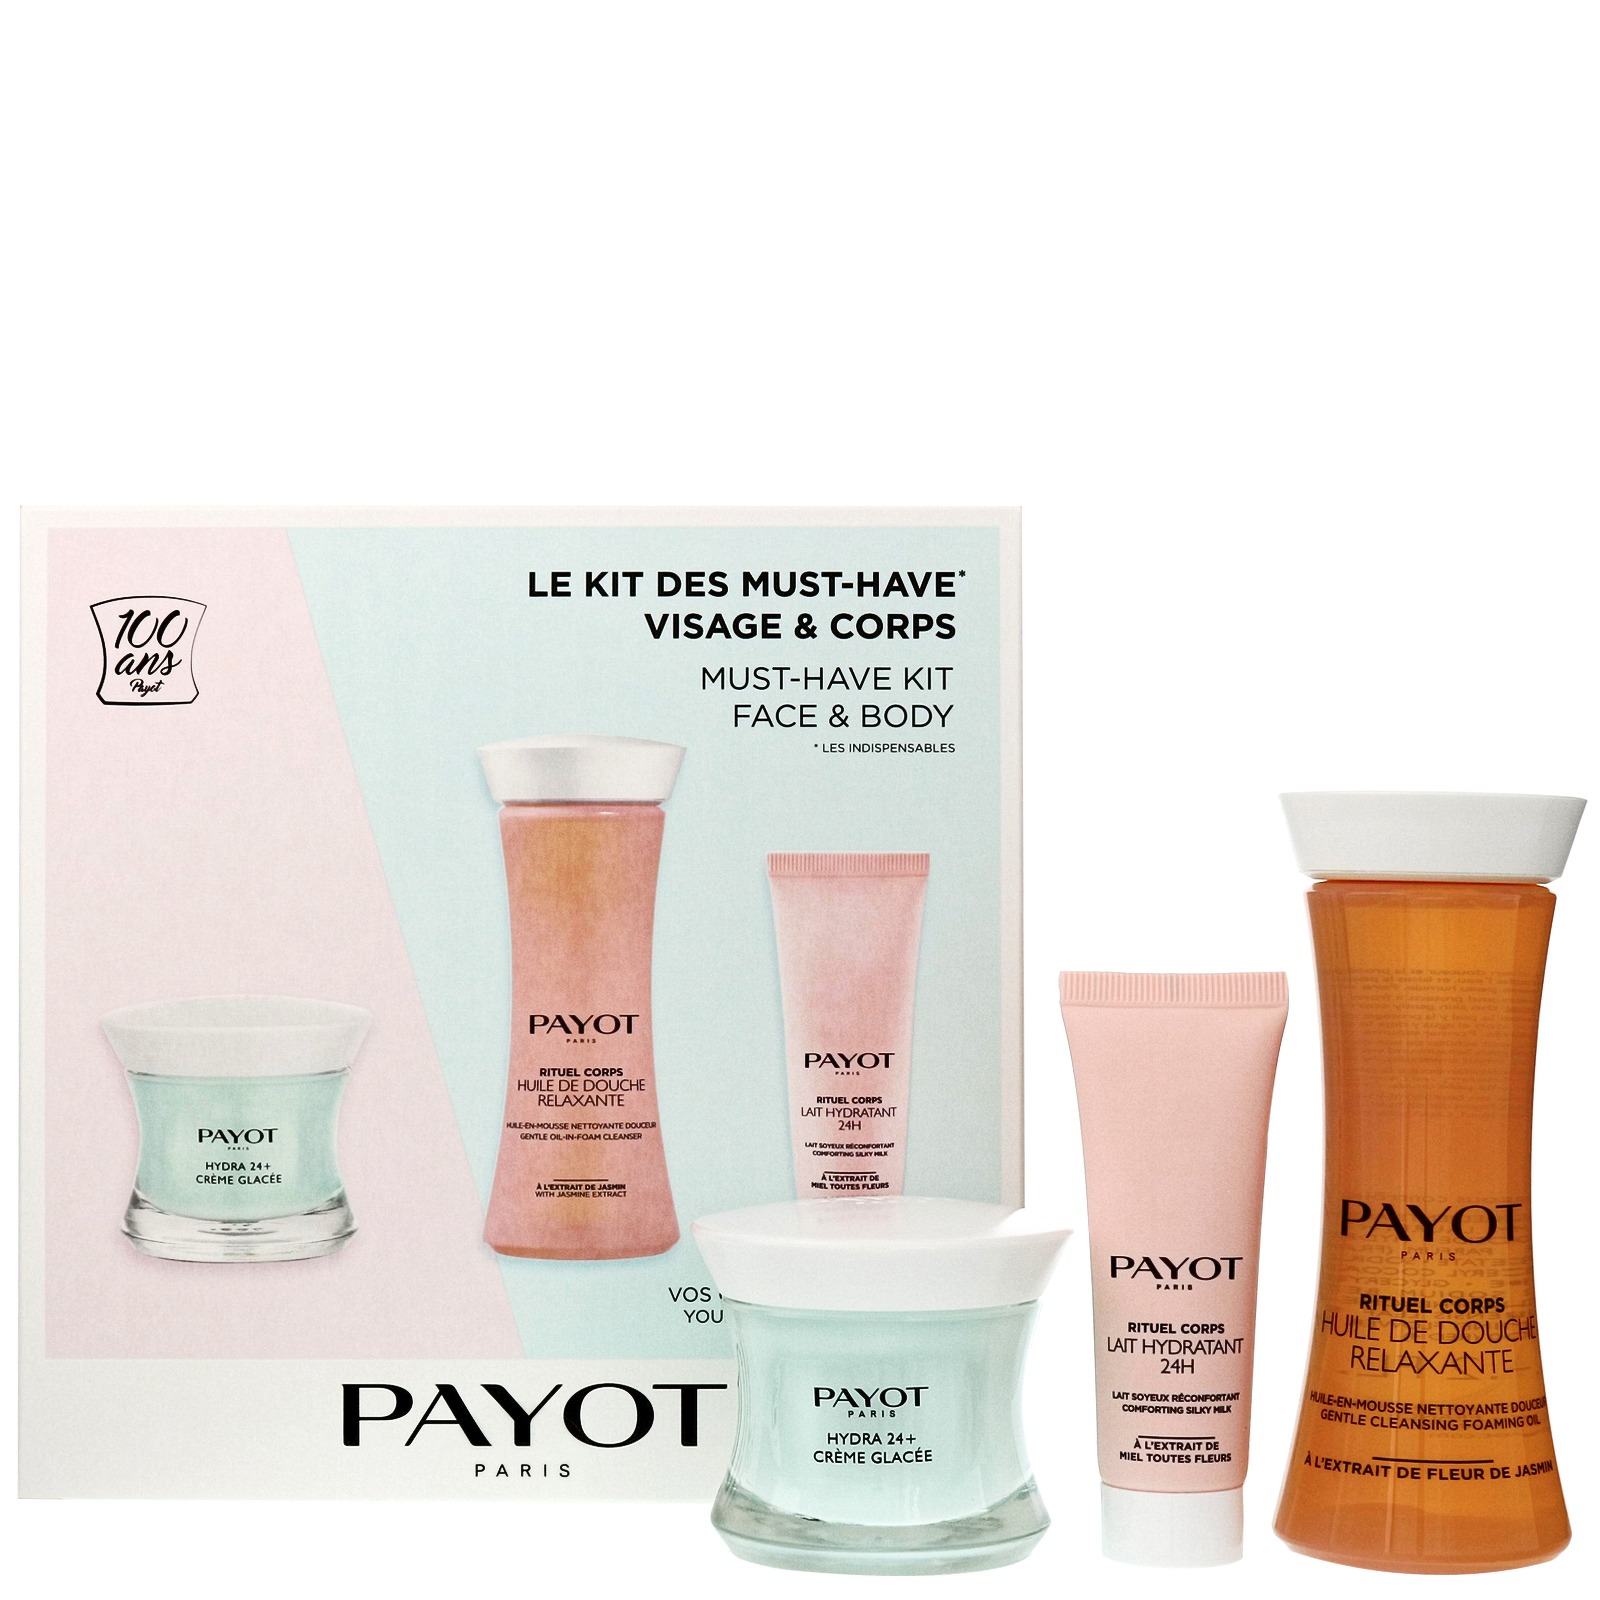 Payot Paris Gifts & Sets Must Have Kit For Face and Body